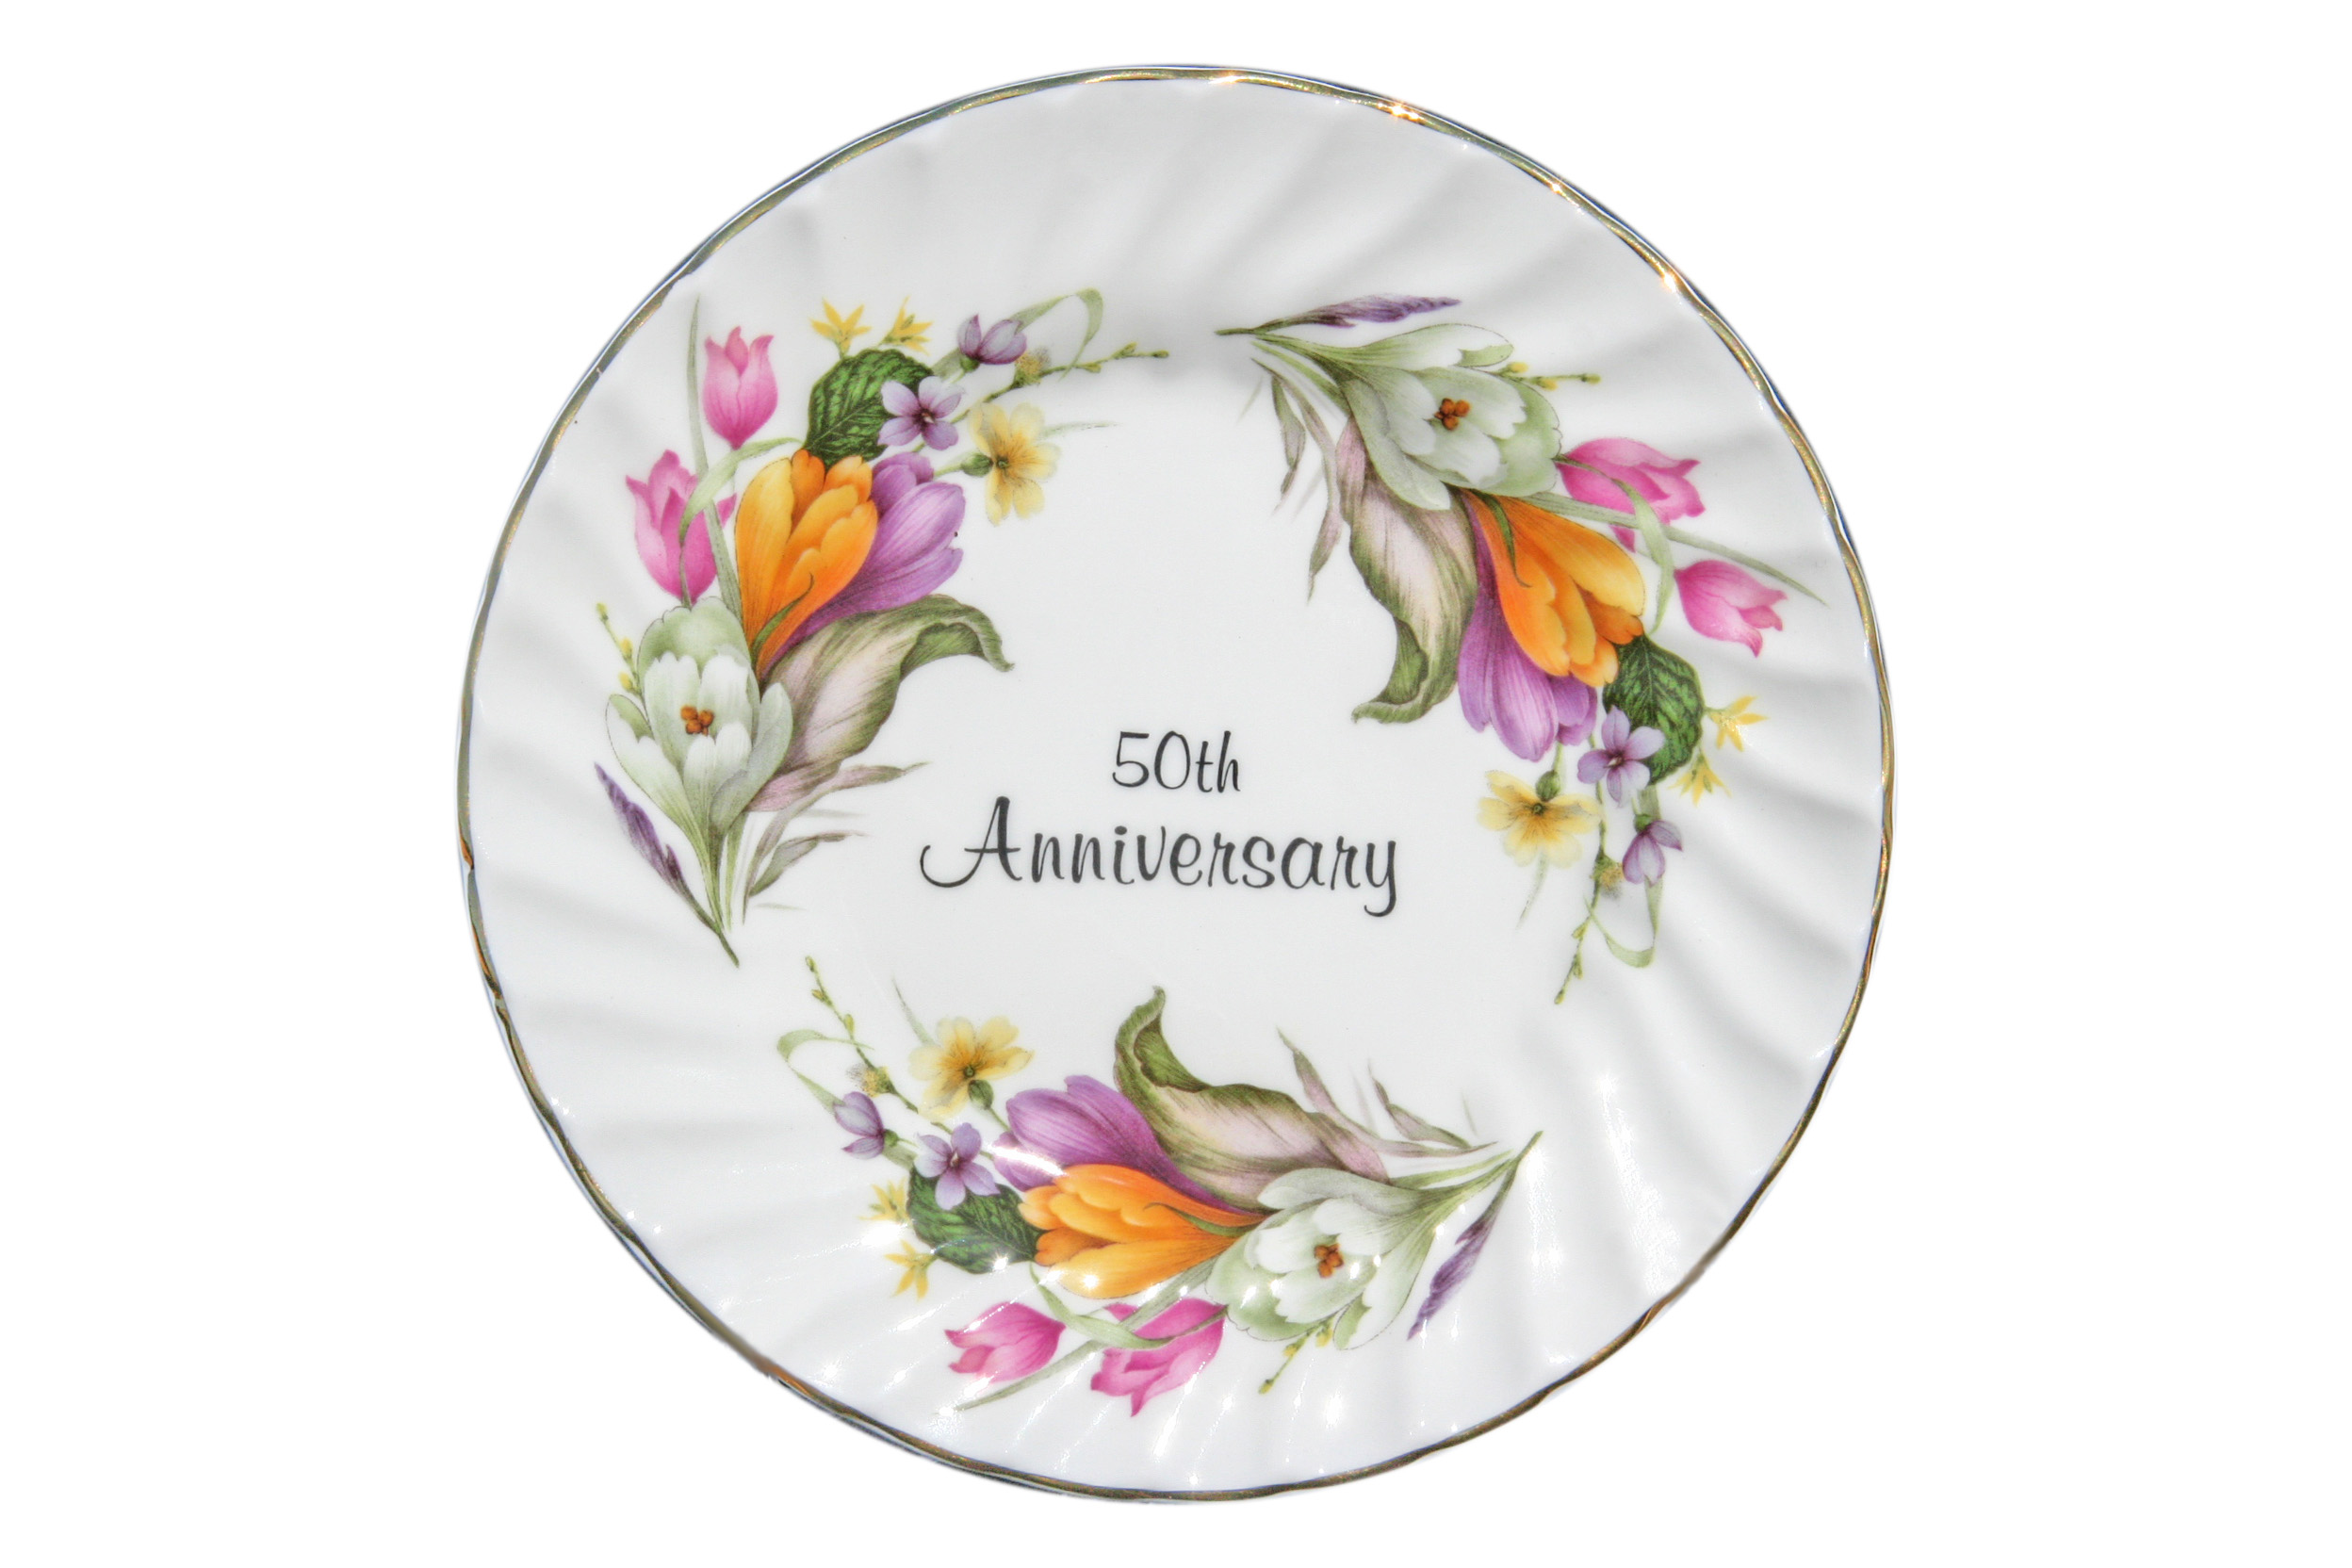 50th Anniversary Plate (6 inch) with stand